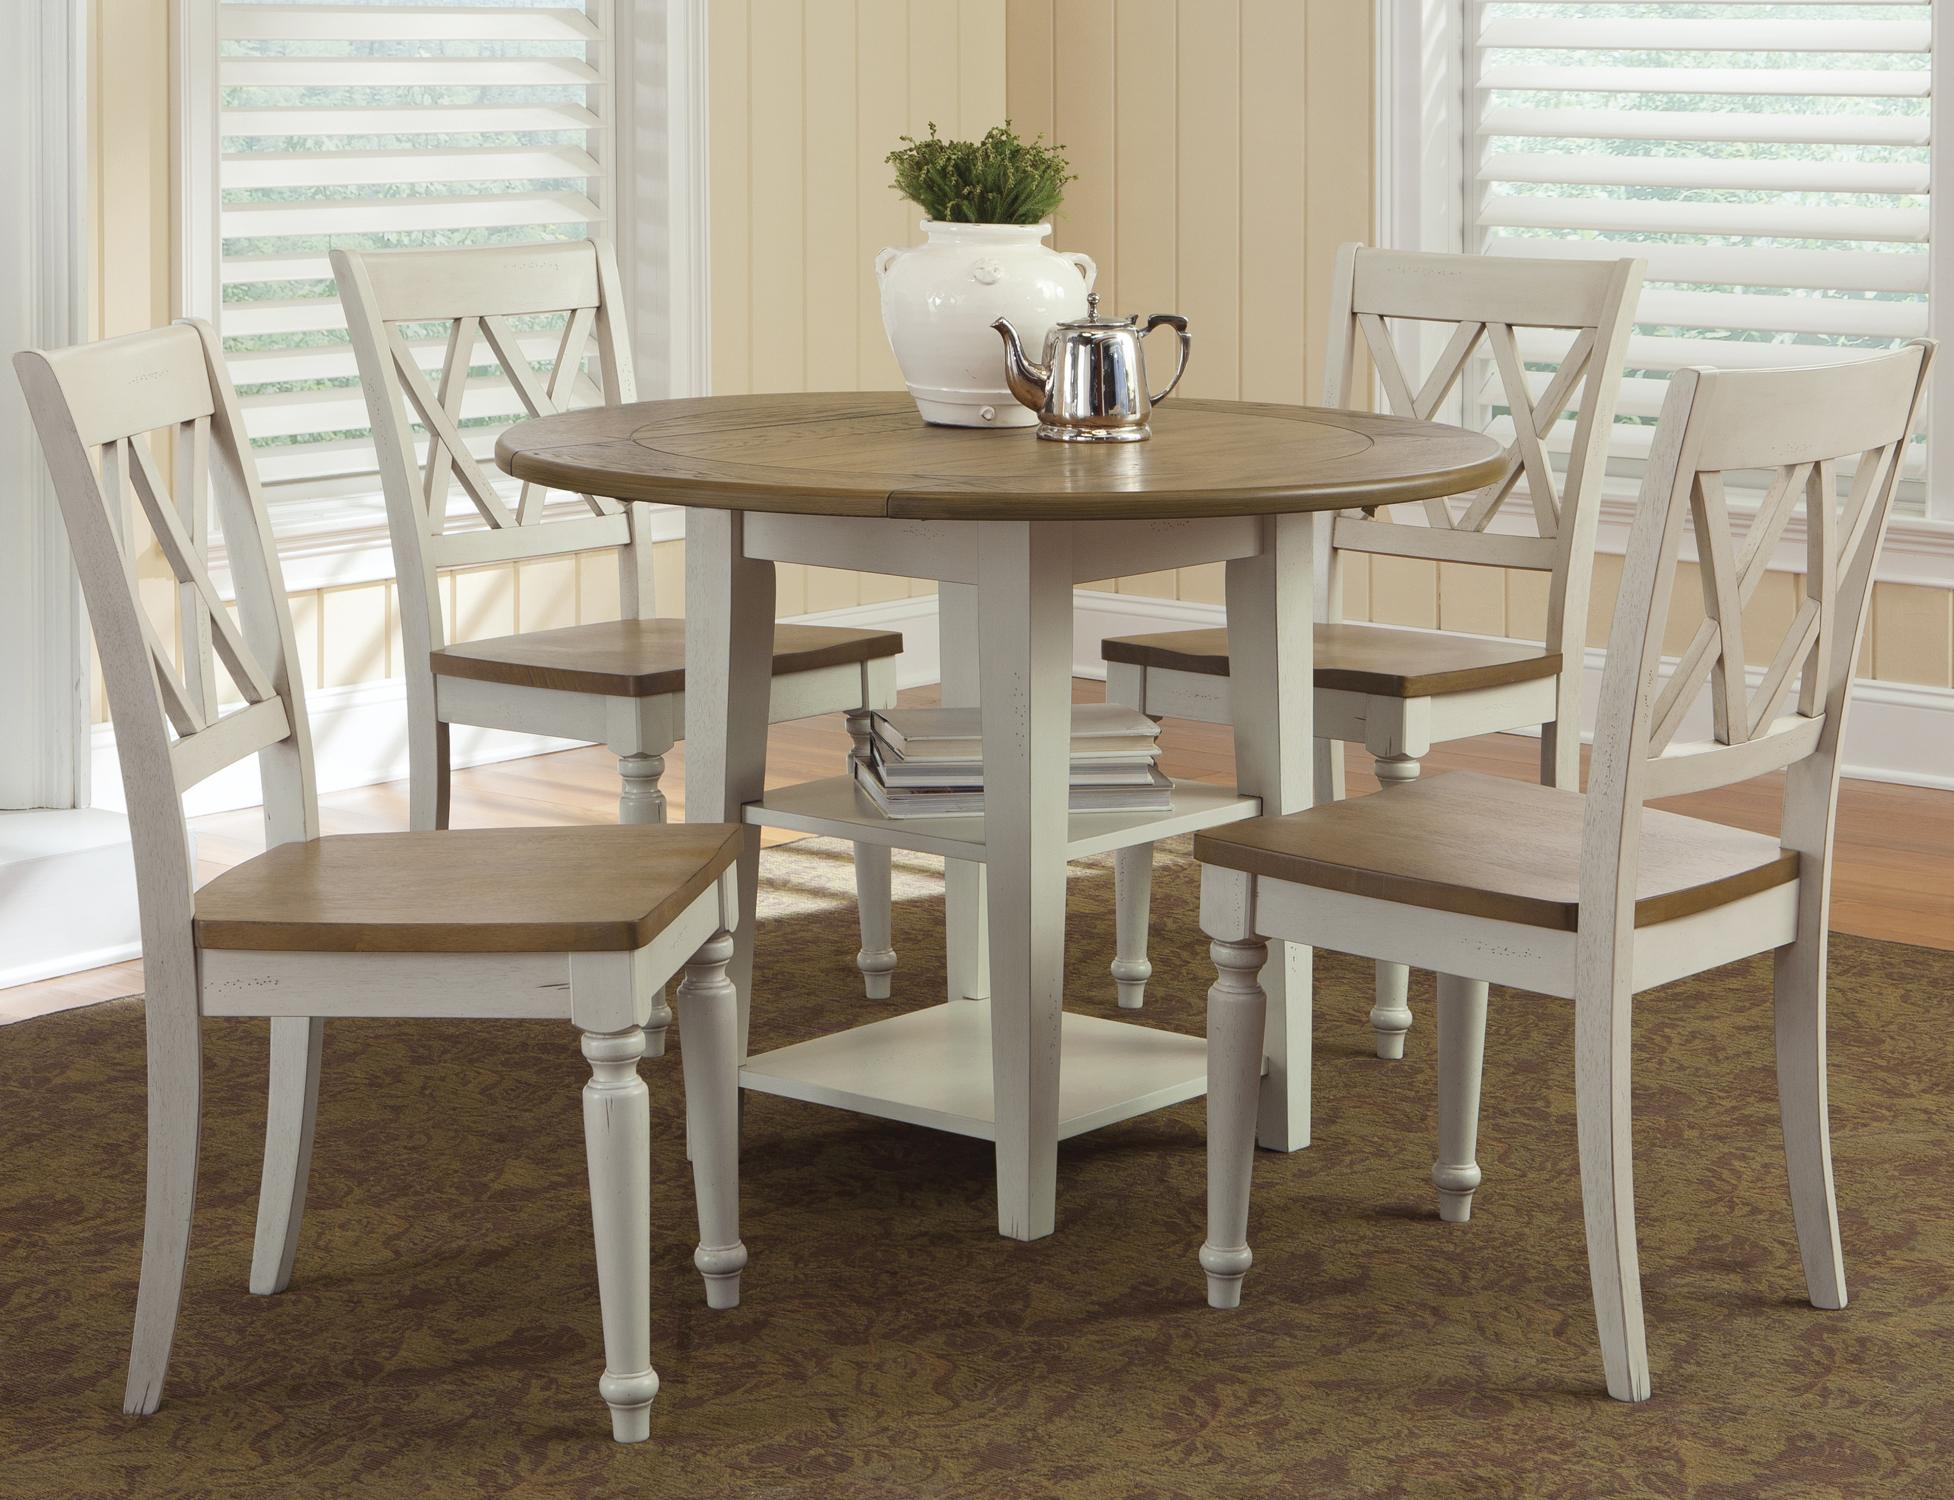 Al Fresco III 5 Piece Drop Leaf Table and Chairs Set by Liberty Furniture at Steger's Furniture